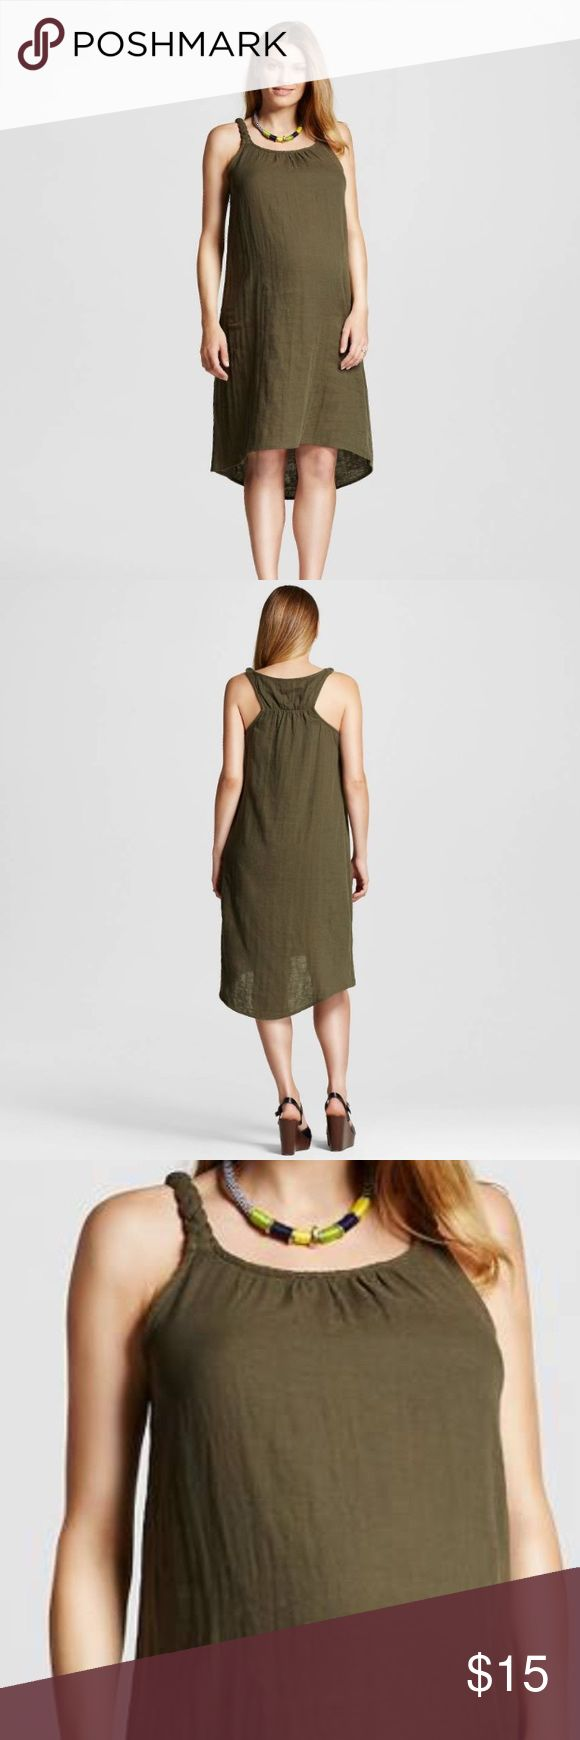 Olive green maternity dress image collections braidsmaid dress sage green maternity dress fashion dresses sage green maternity dress ombrellifo image collections ombrellifo Images